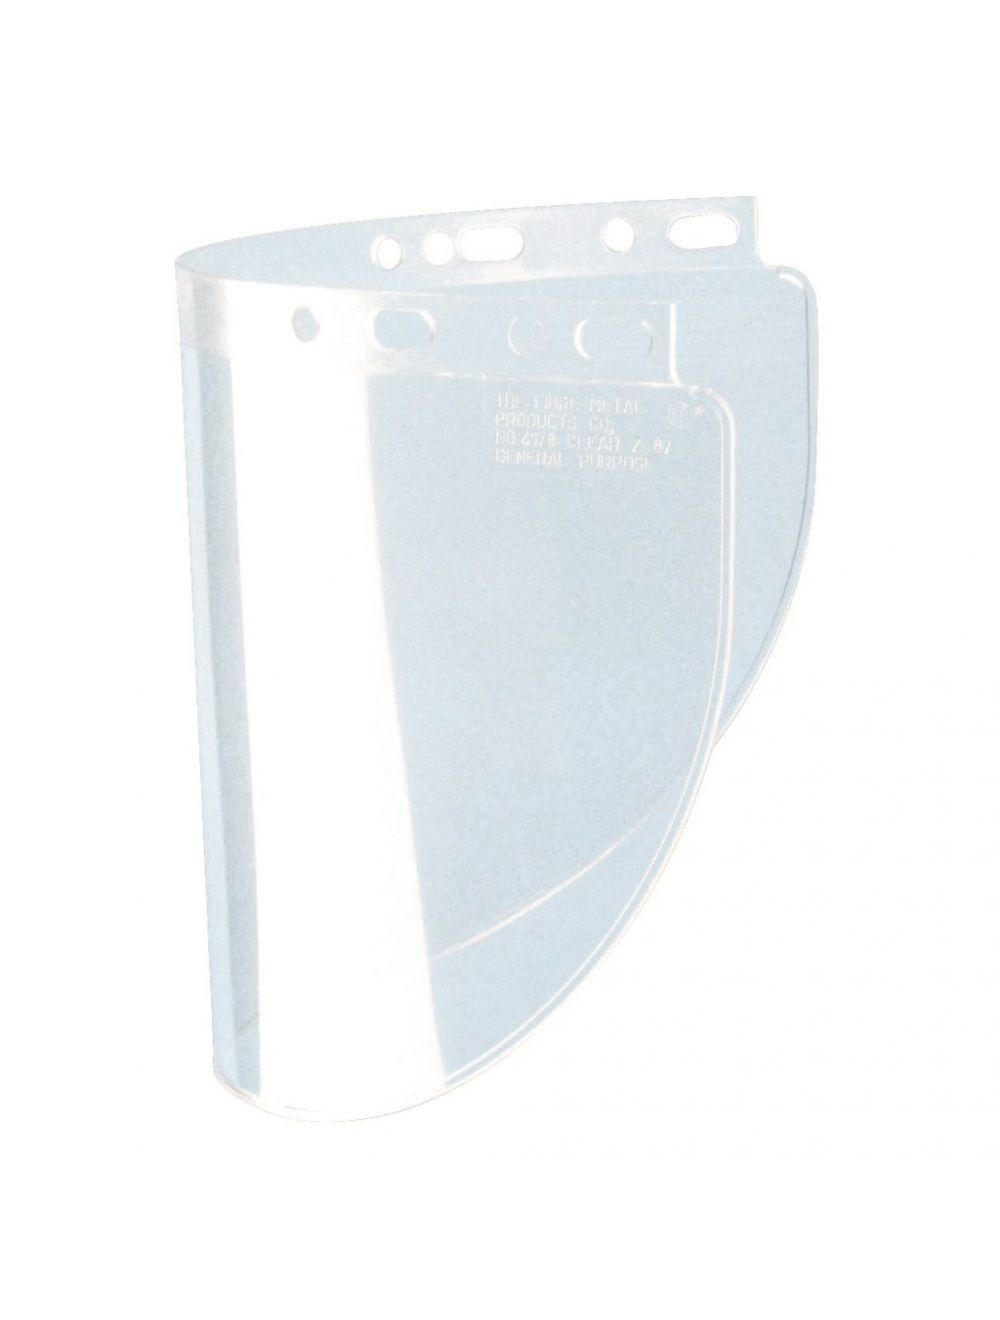 Faceshield Clear Honeywell Wide View 4178CL